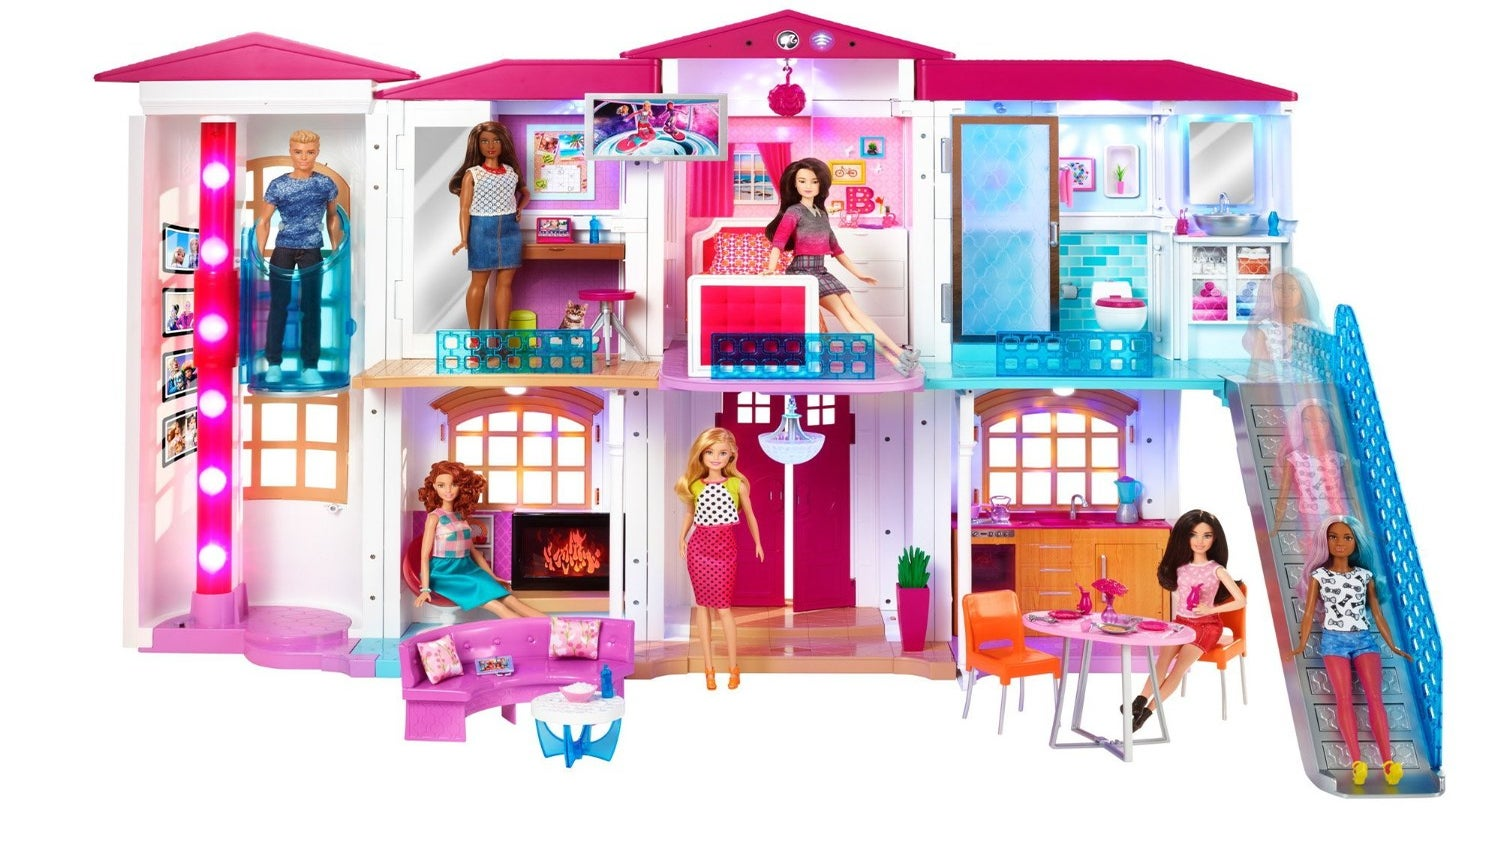 This One of A Kind Doll House Is A Great Holiday Gift